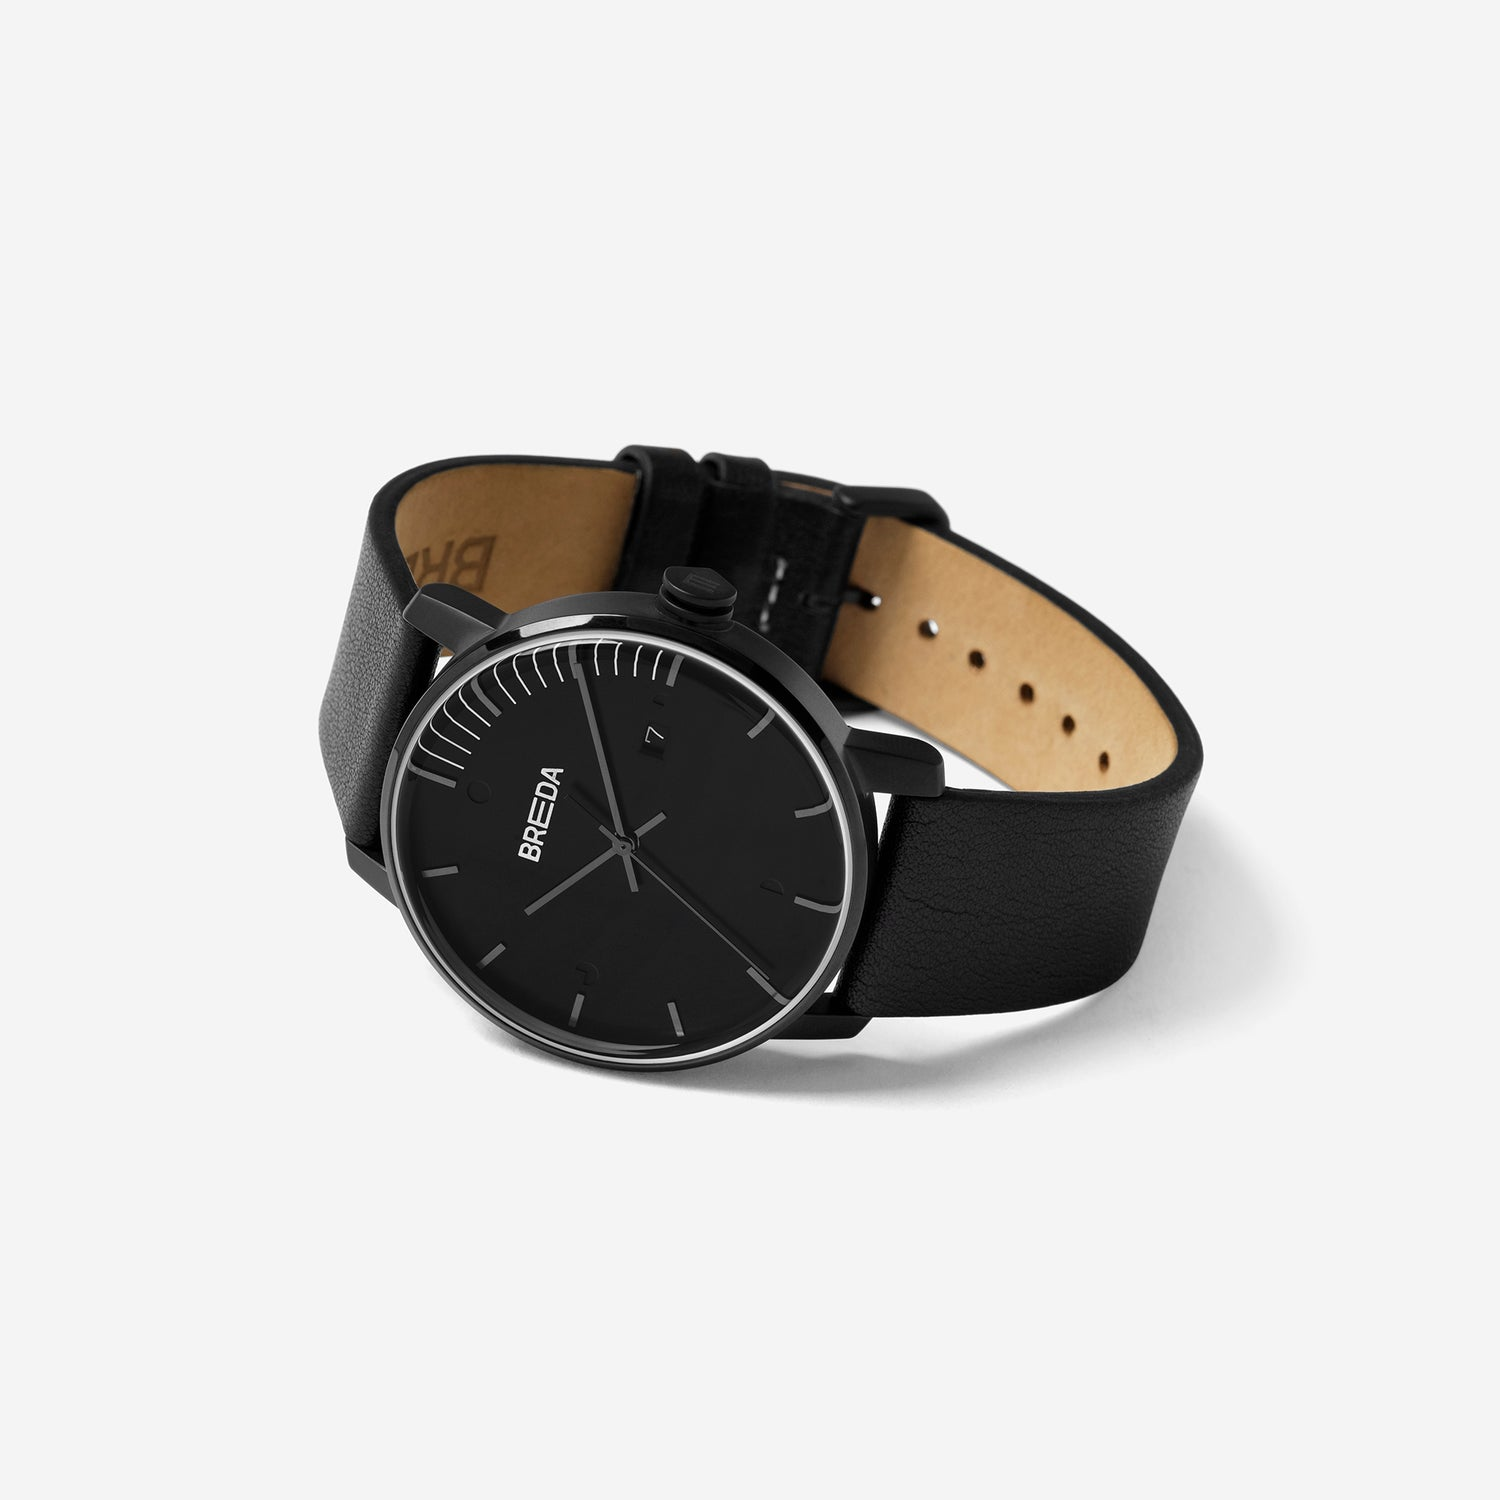 Phase   Italian Leather Watch   Minimal Dial Watches   BREDA Watch